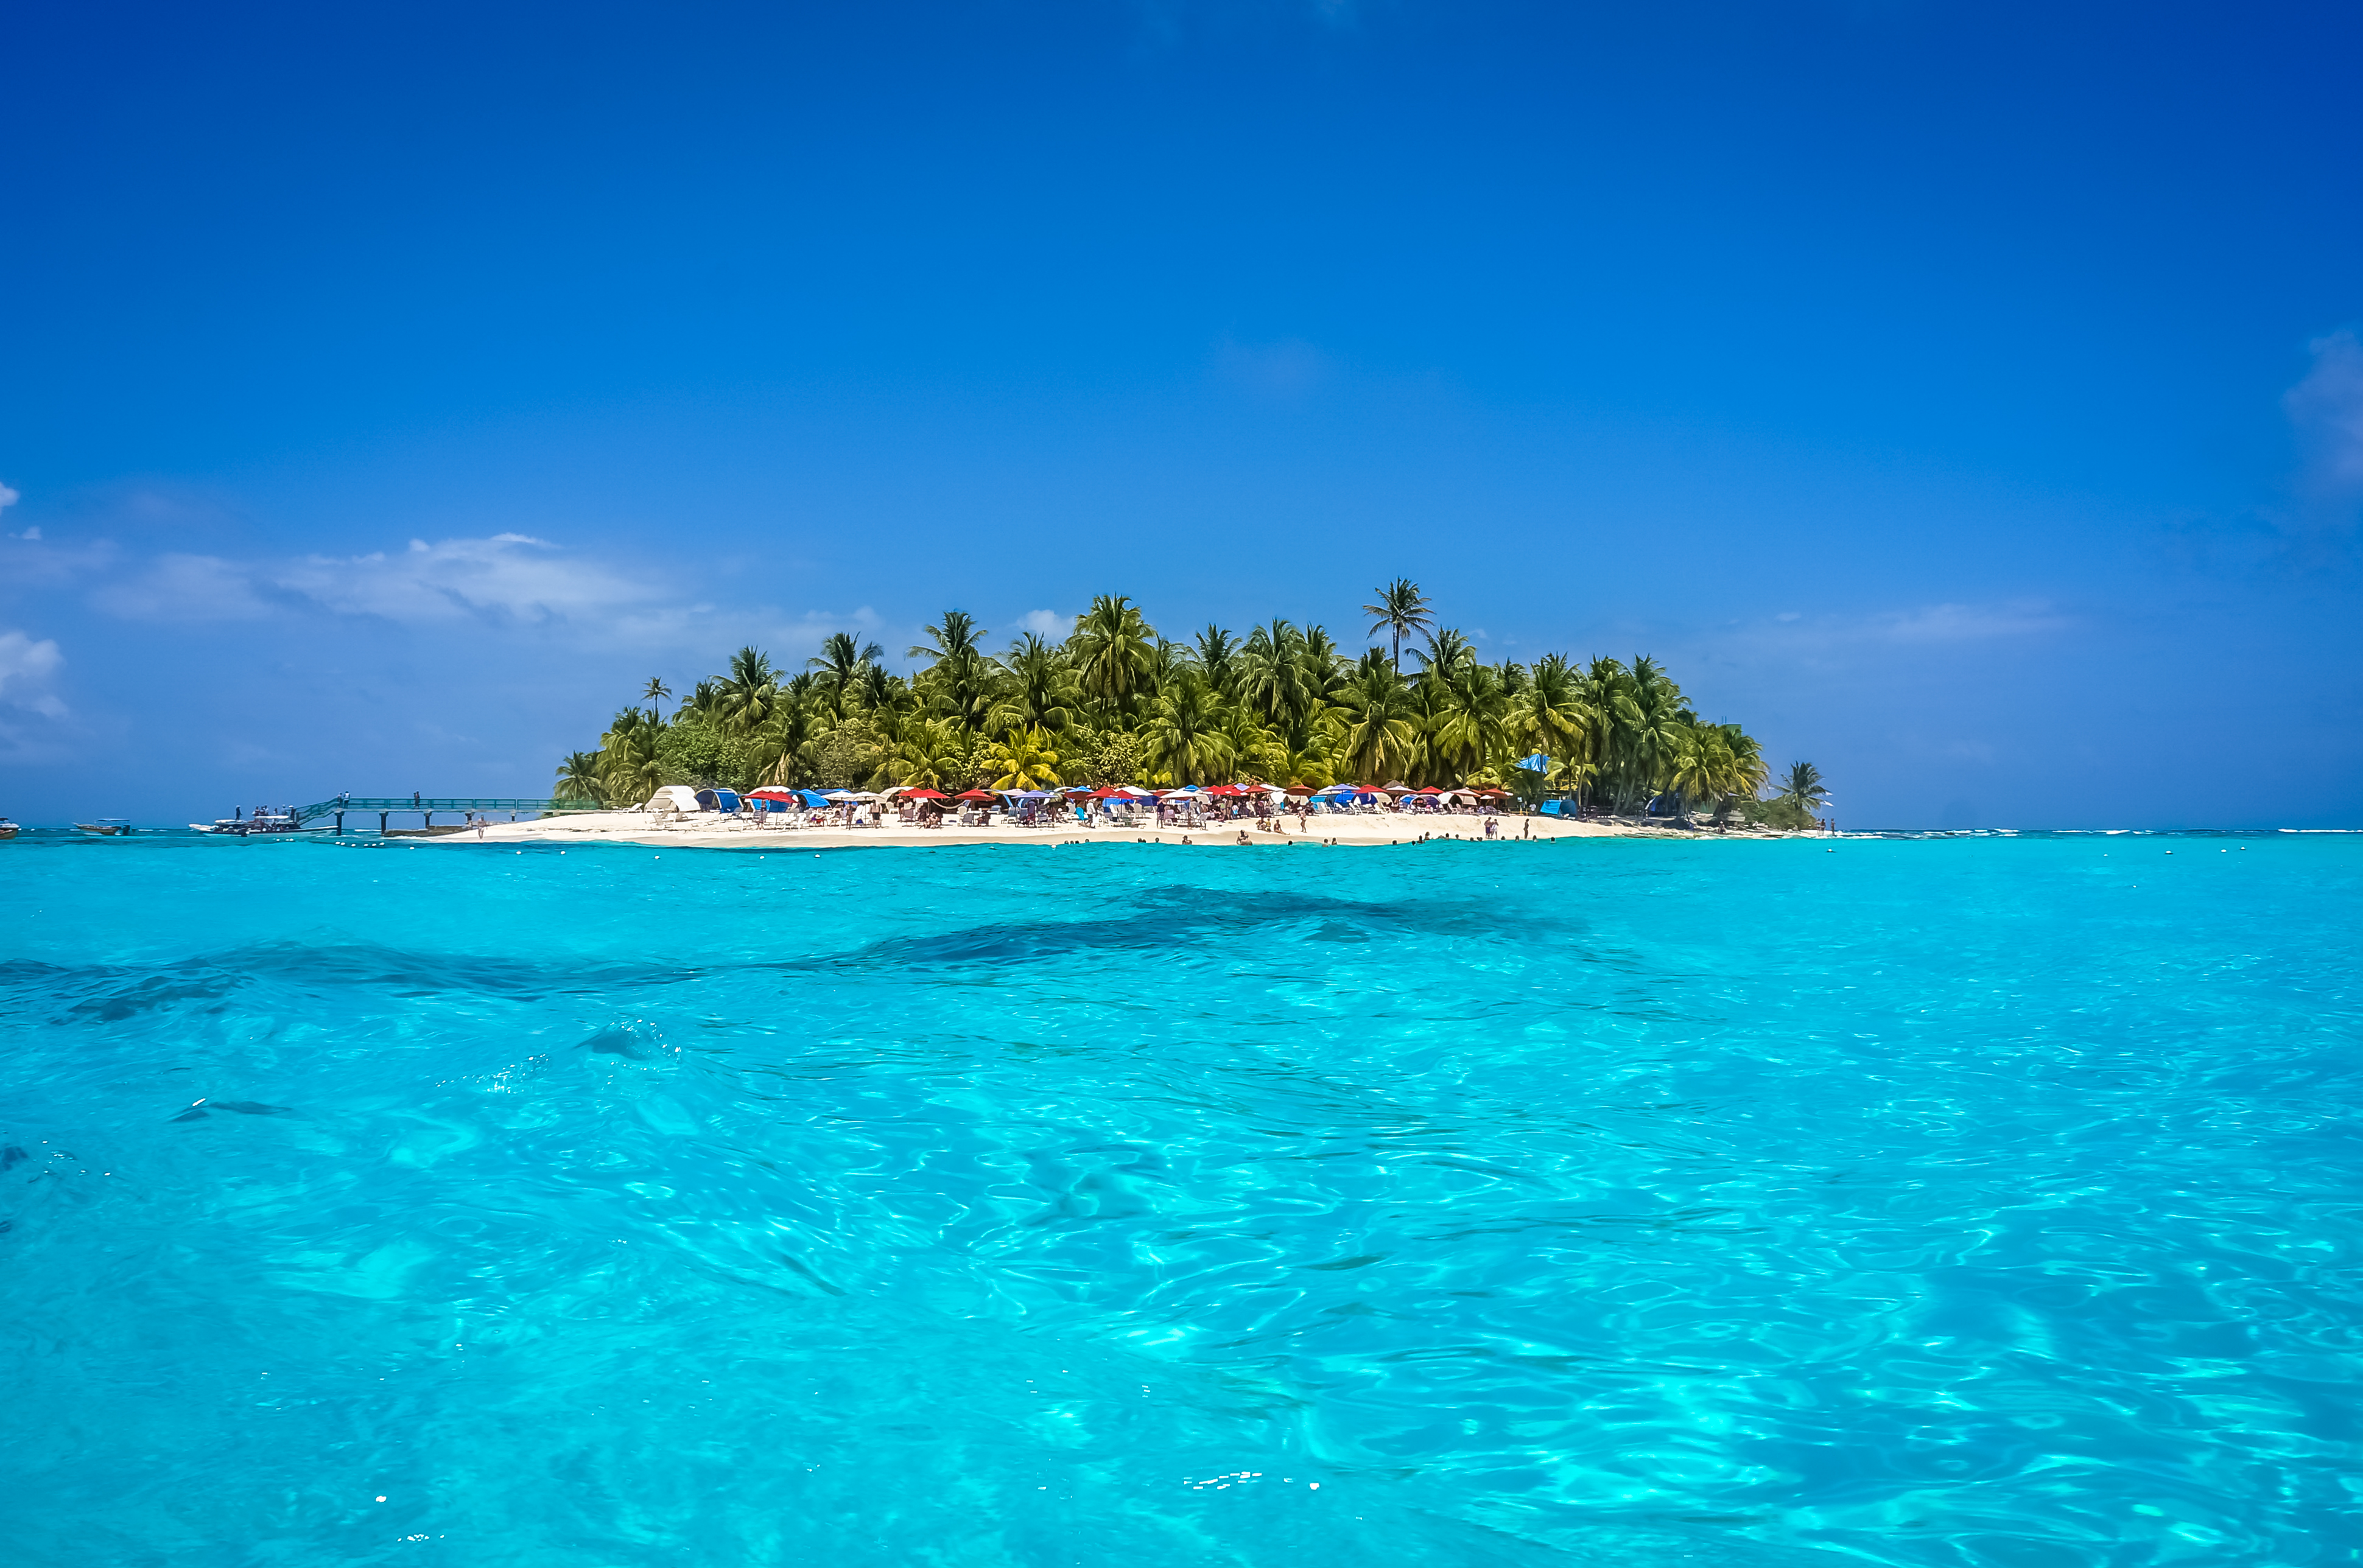 San Andres Island Tourism Best of San Andres Island